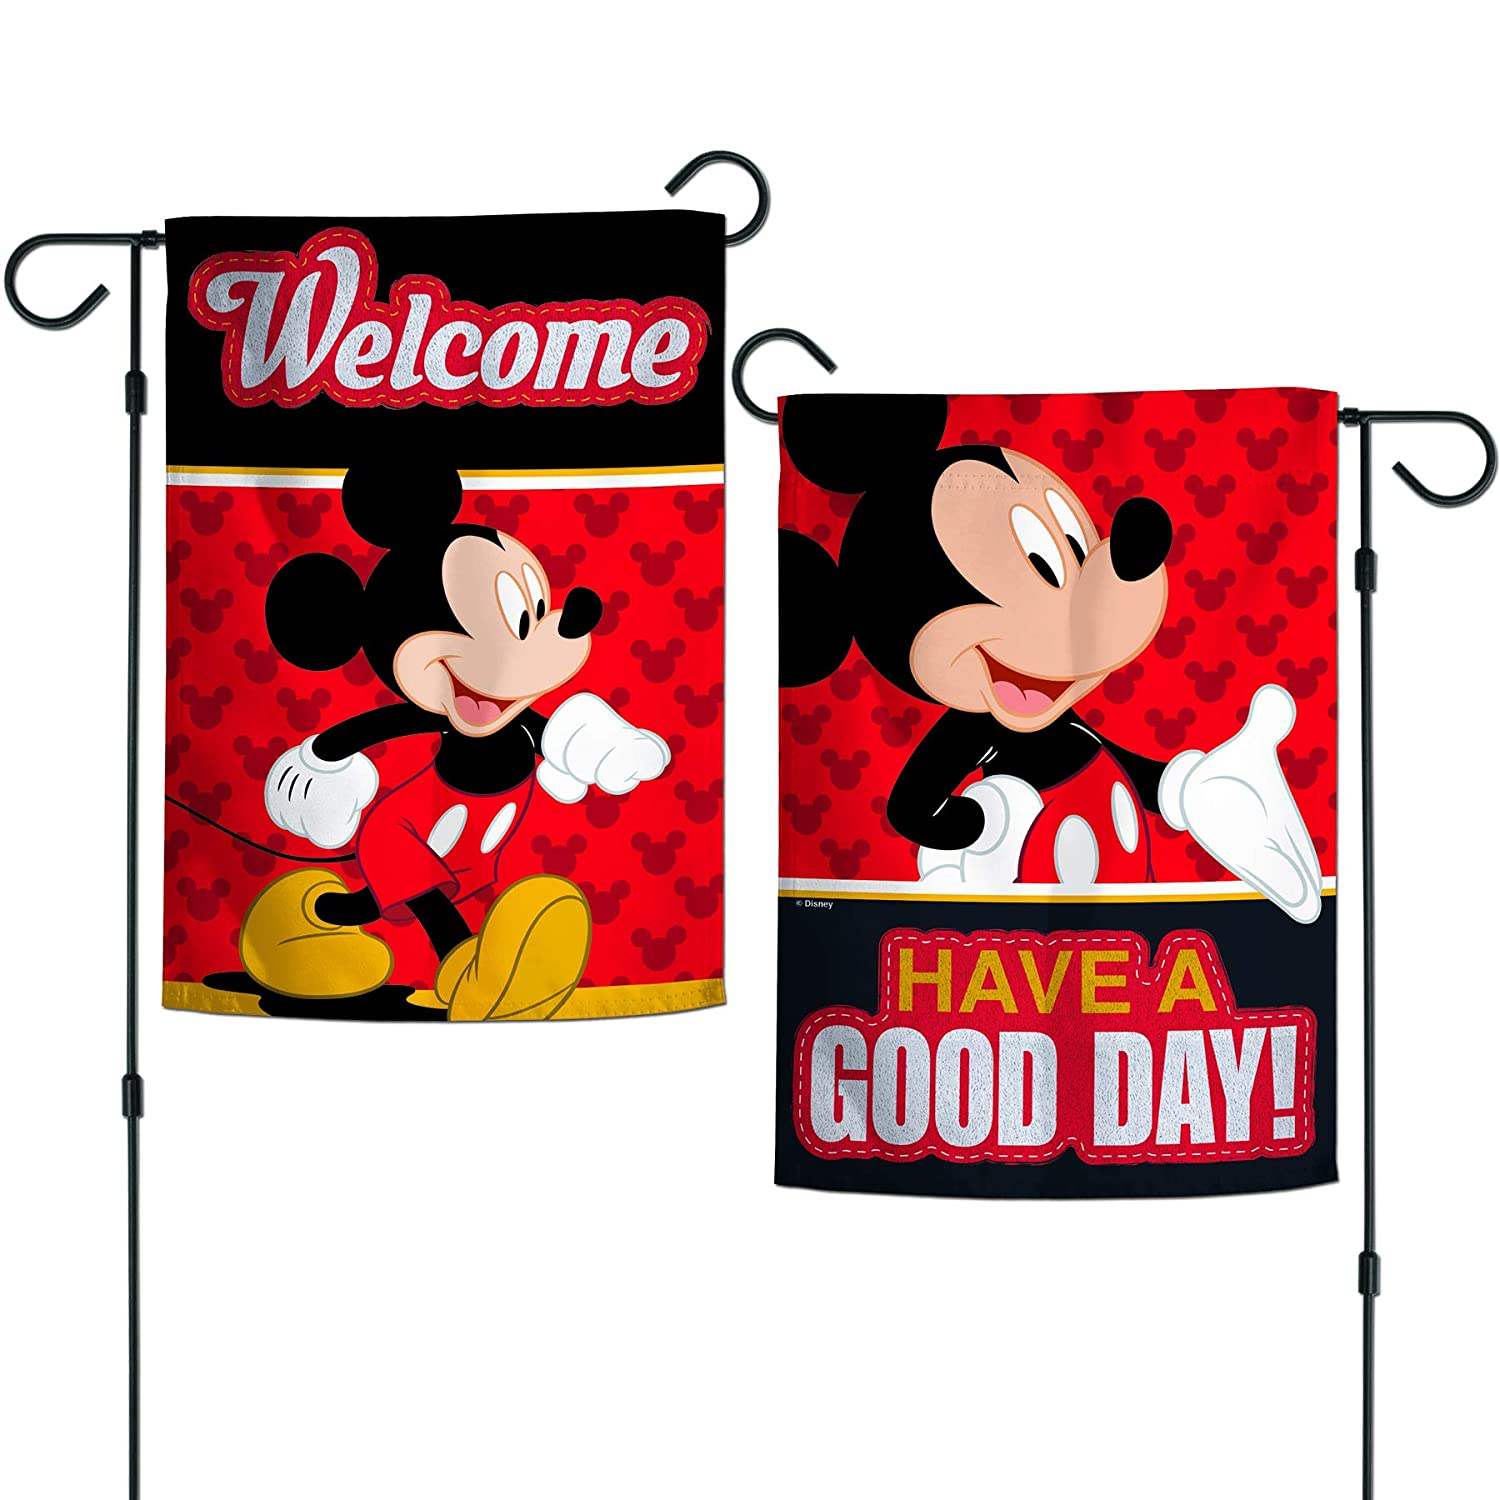 "2 Sided 12.5"" x 18"" Garden Flags"